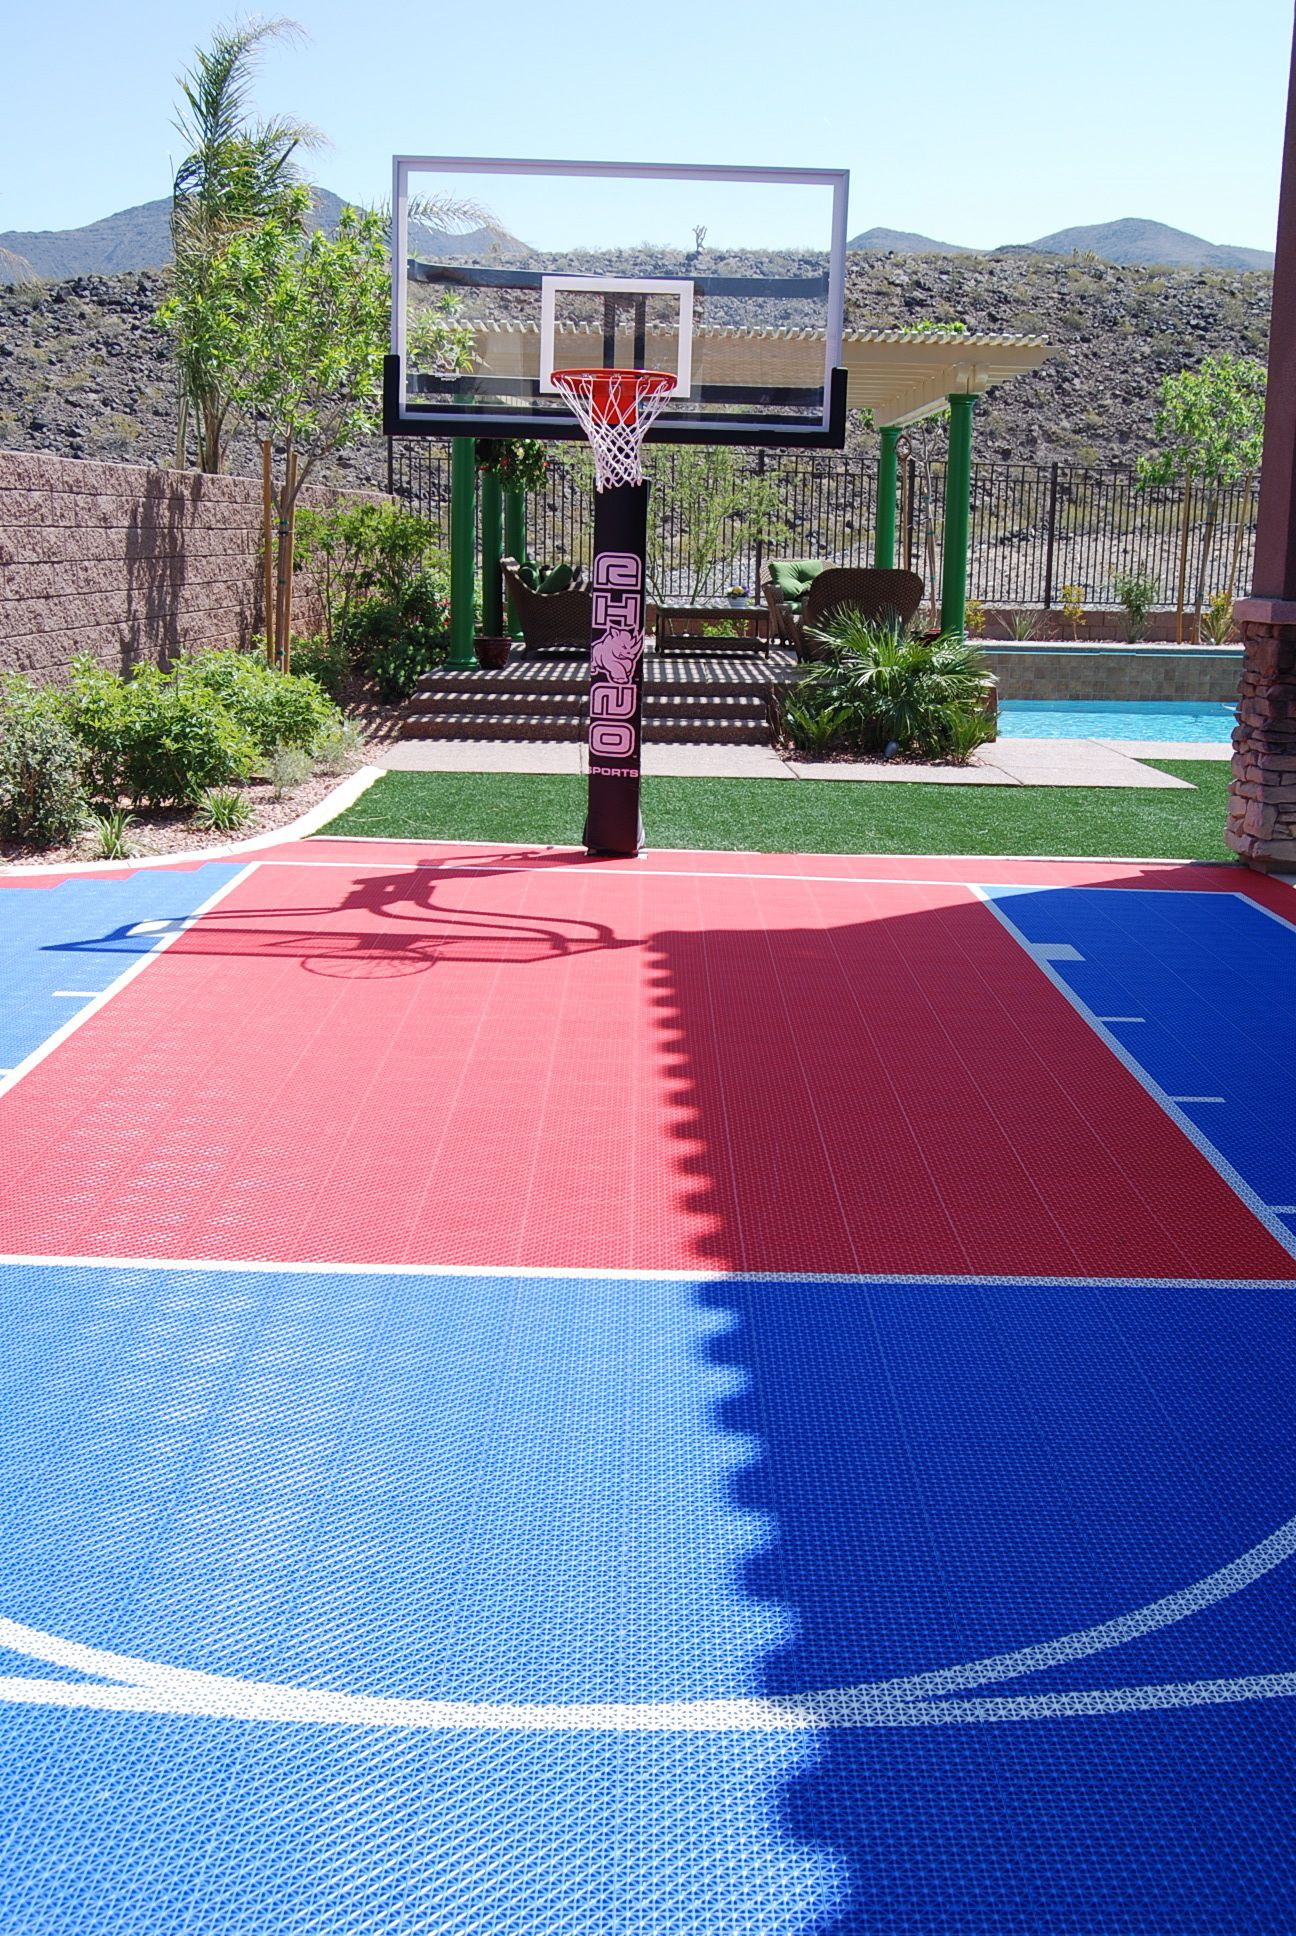 Be Awesome Have A Basketball Court In Backyard Backyard Court